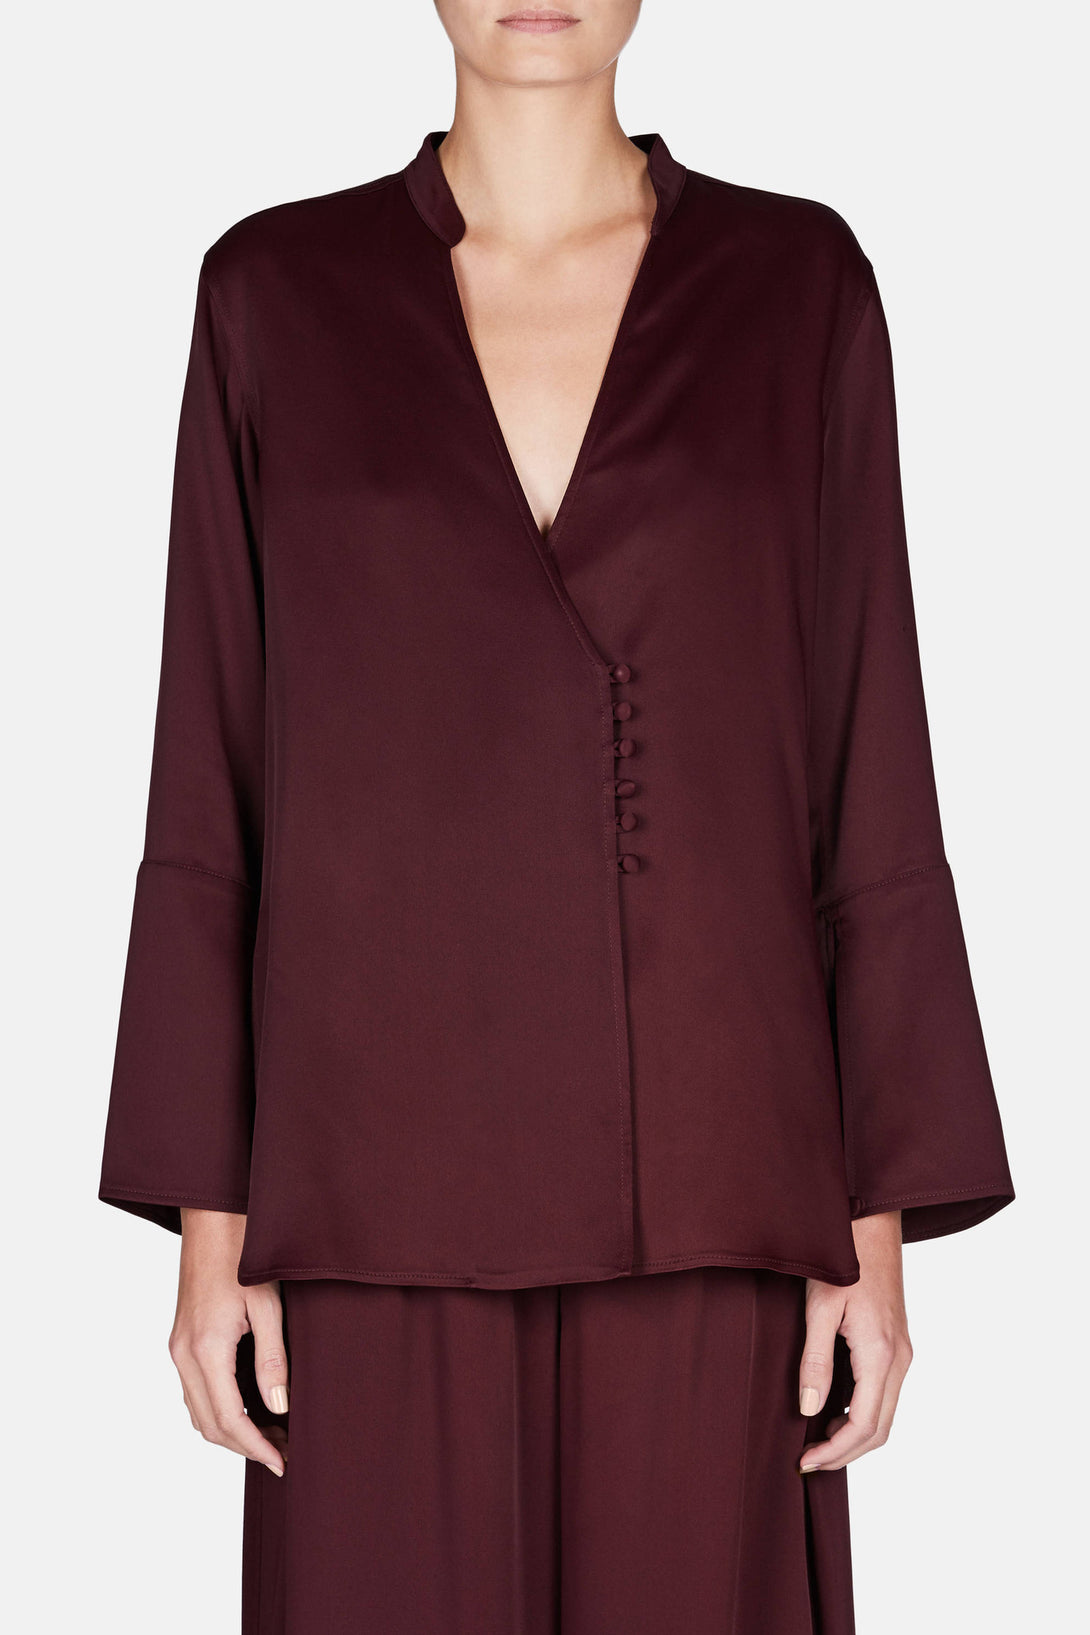 Susan Shirt - Burgundy